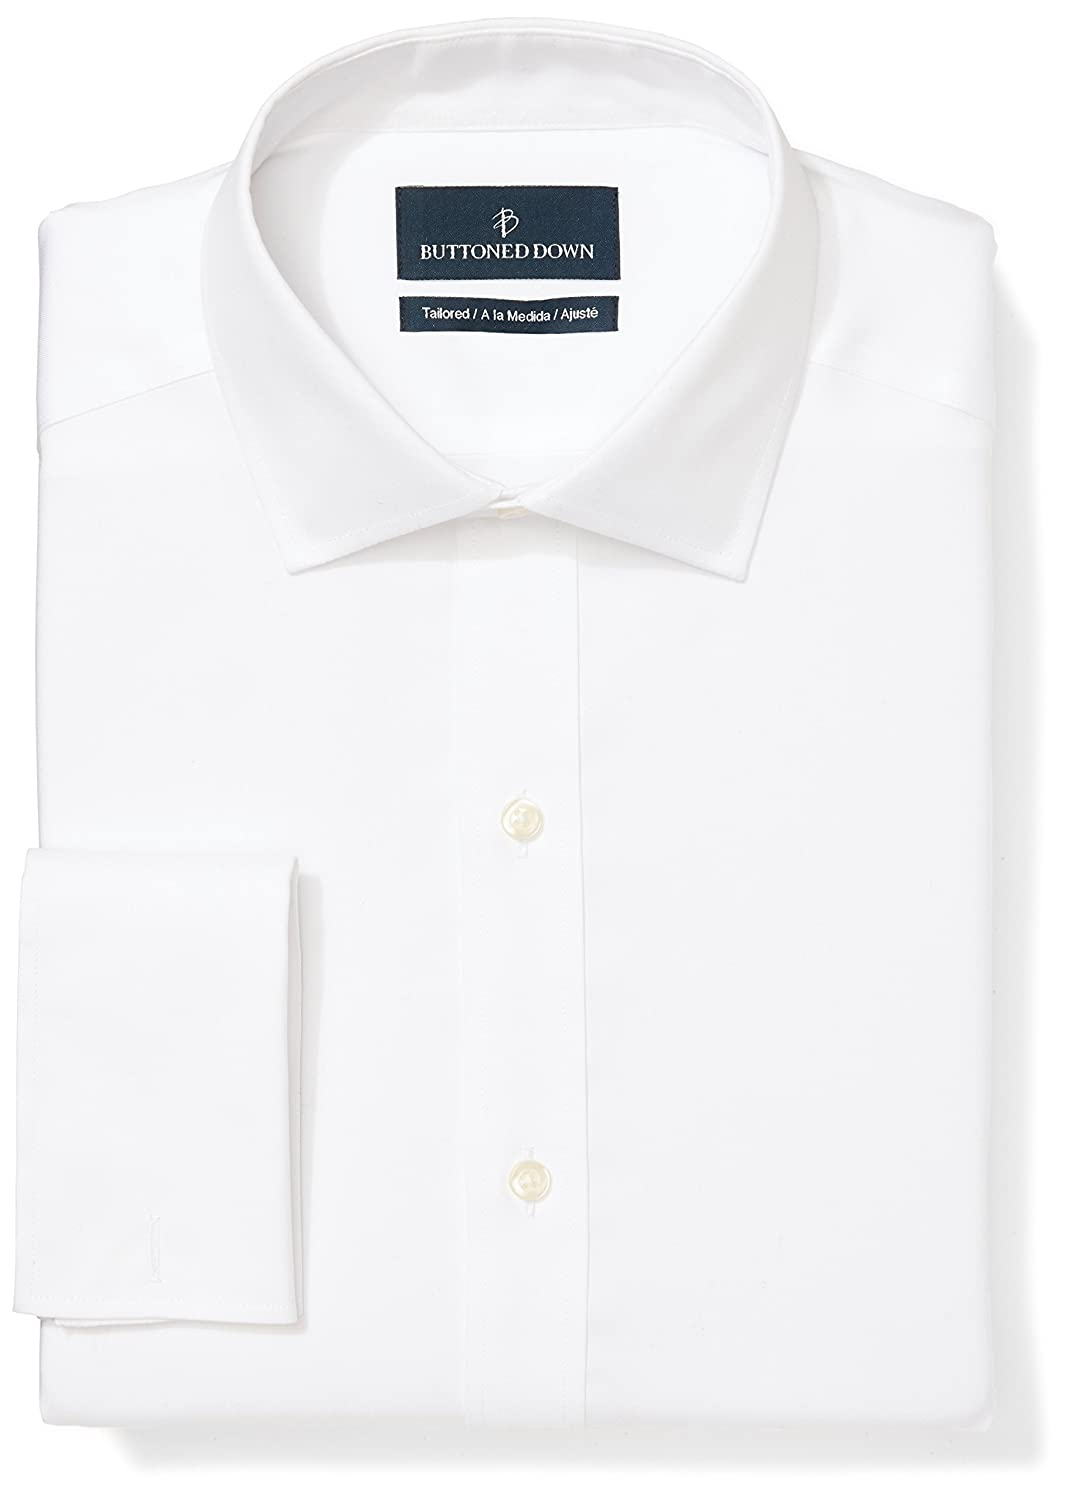 BUTTONED DOWN Men's Tailored Fit French Cuff Non-Iron Dress Shirt MBD30025